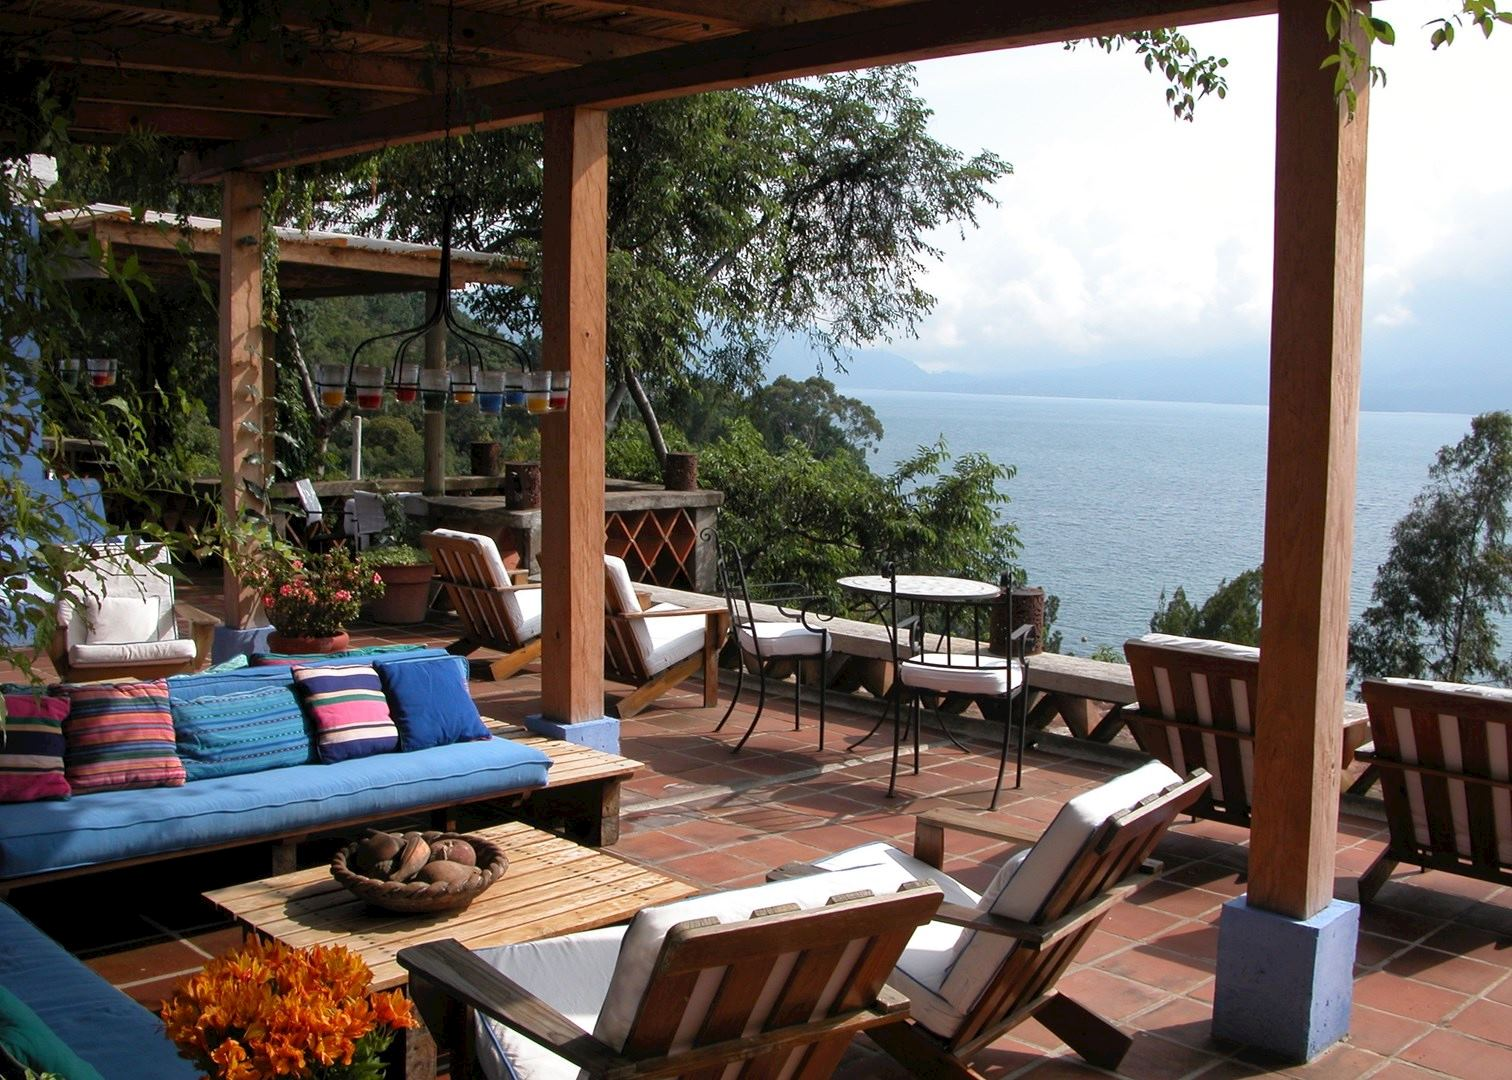 Casa Palopo Hotels In Lake Atitlan Audley Travel